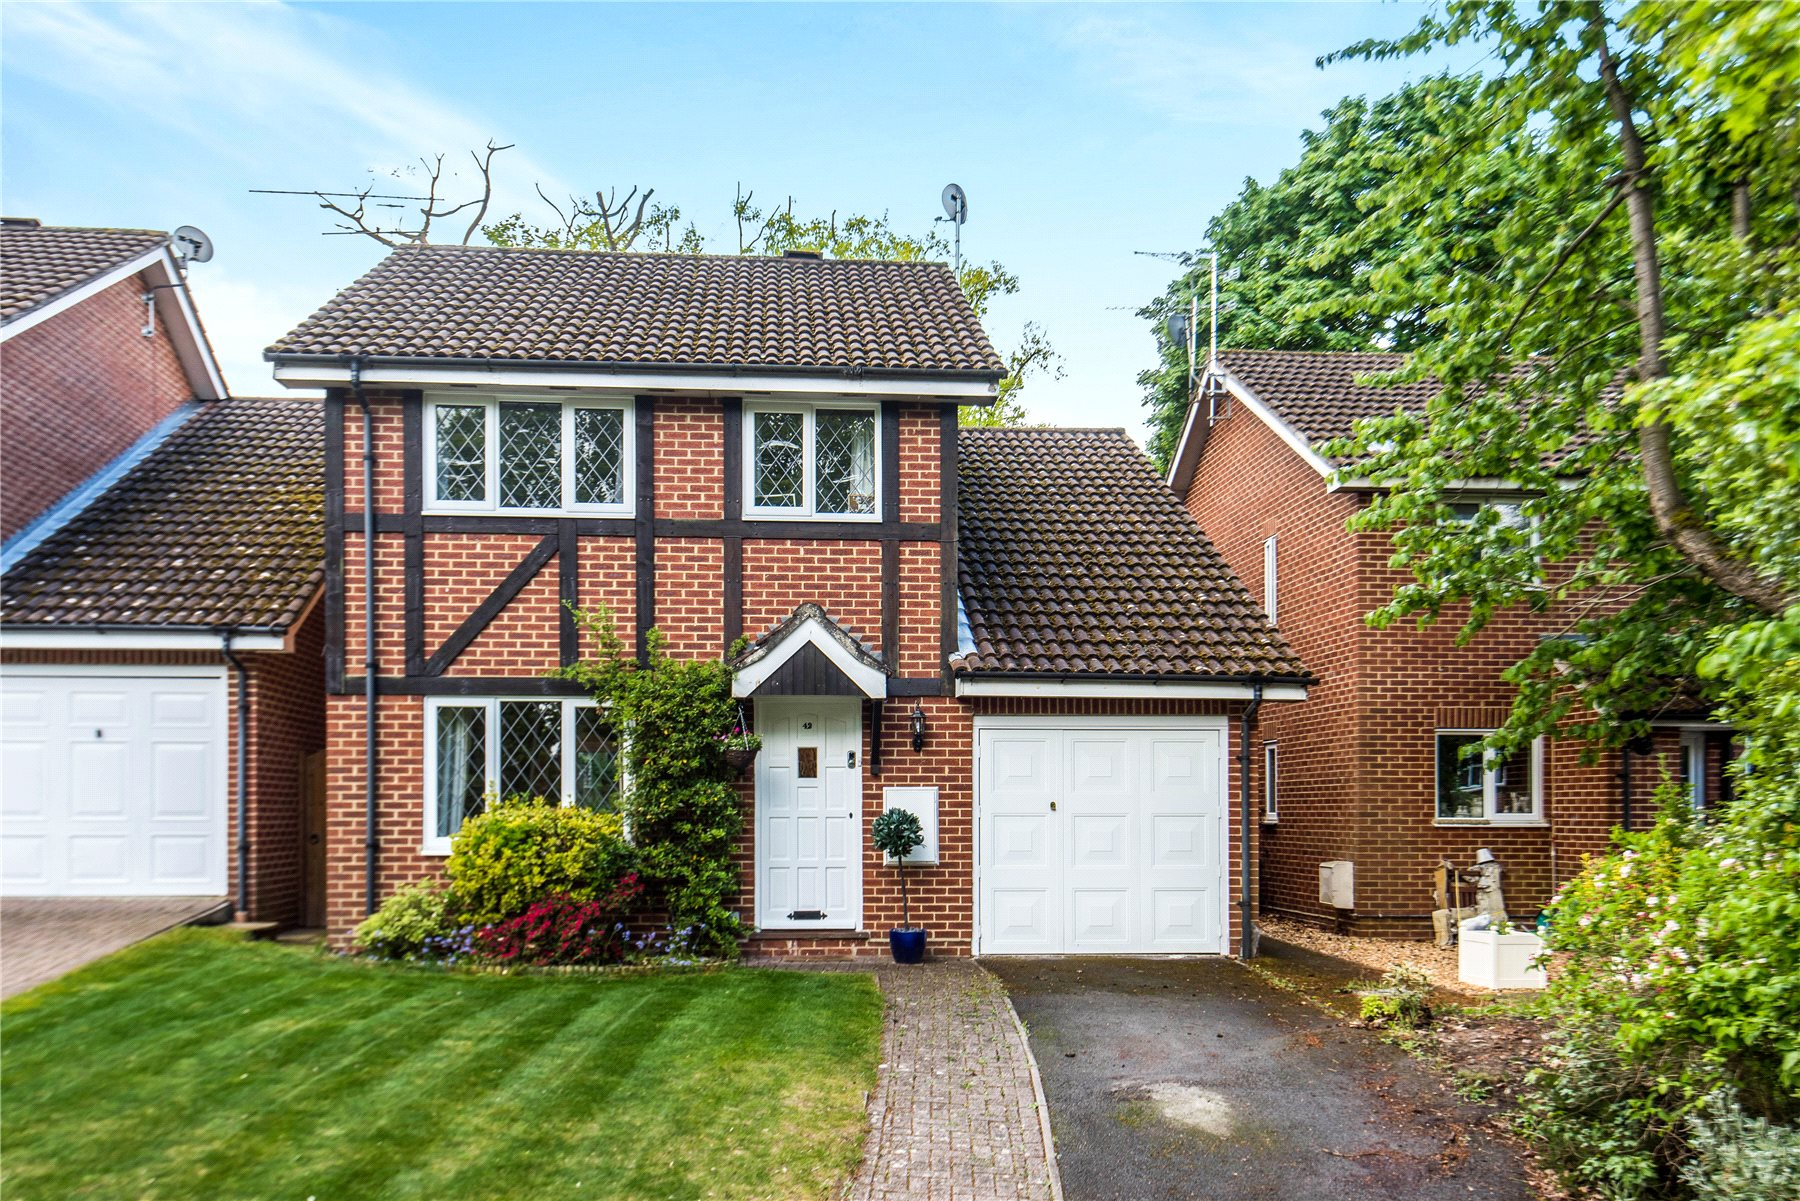 4 Bedrooms Detached House for sale in The Orchard, Lightwater, Surrey, GU18